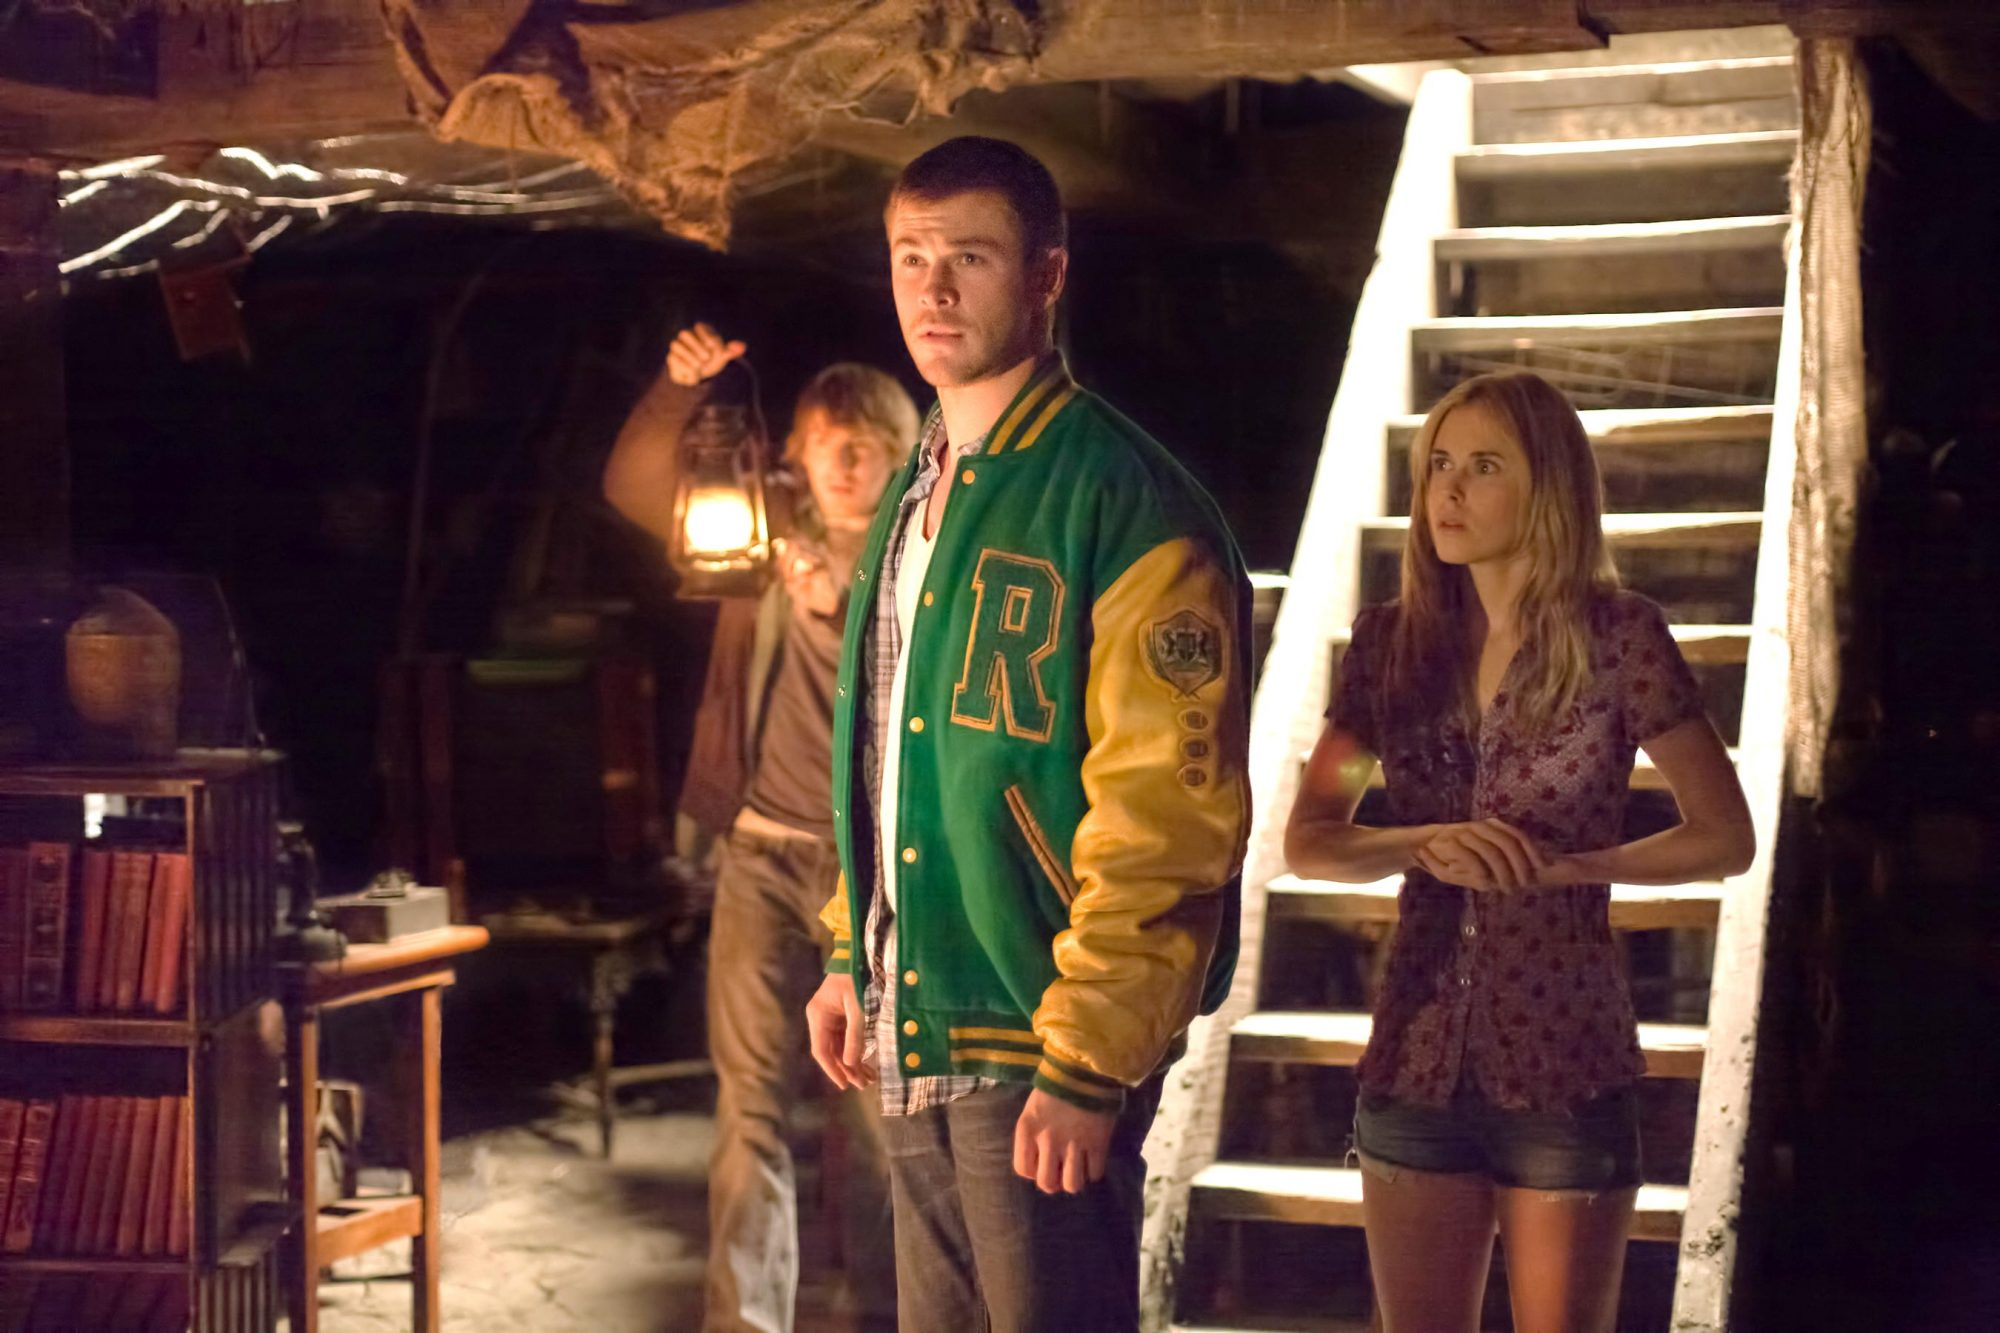 THE CABIN IN THE WOODS, from left: Fran Kranz, Chris Hemsworth, Anna Hutchison, 2012. ph: Diyah Pera